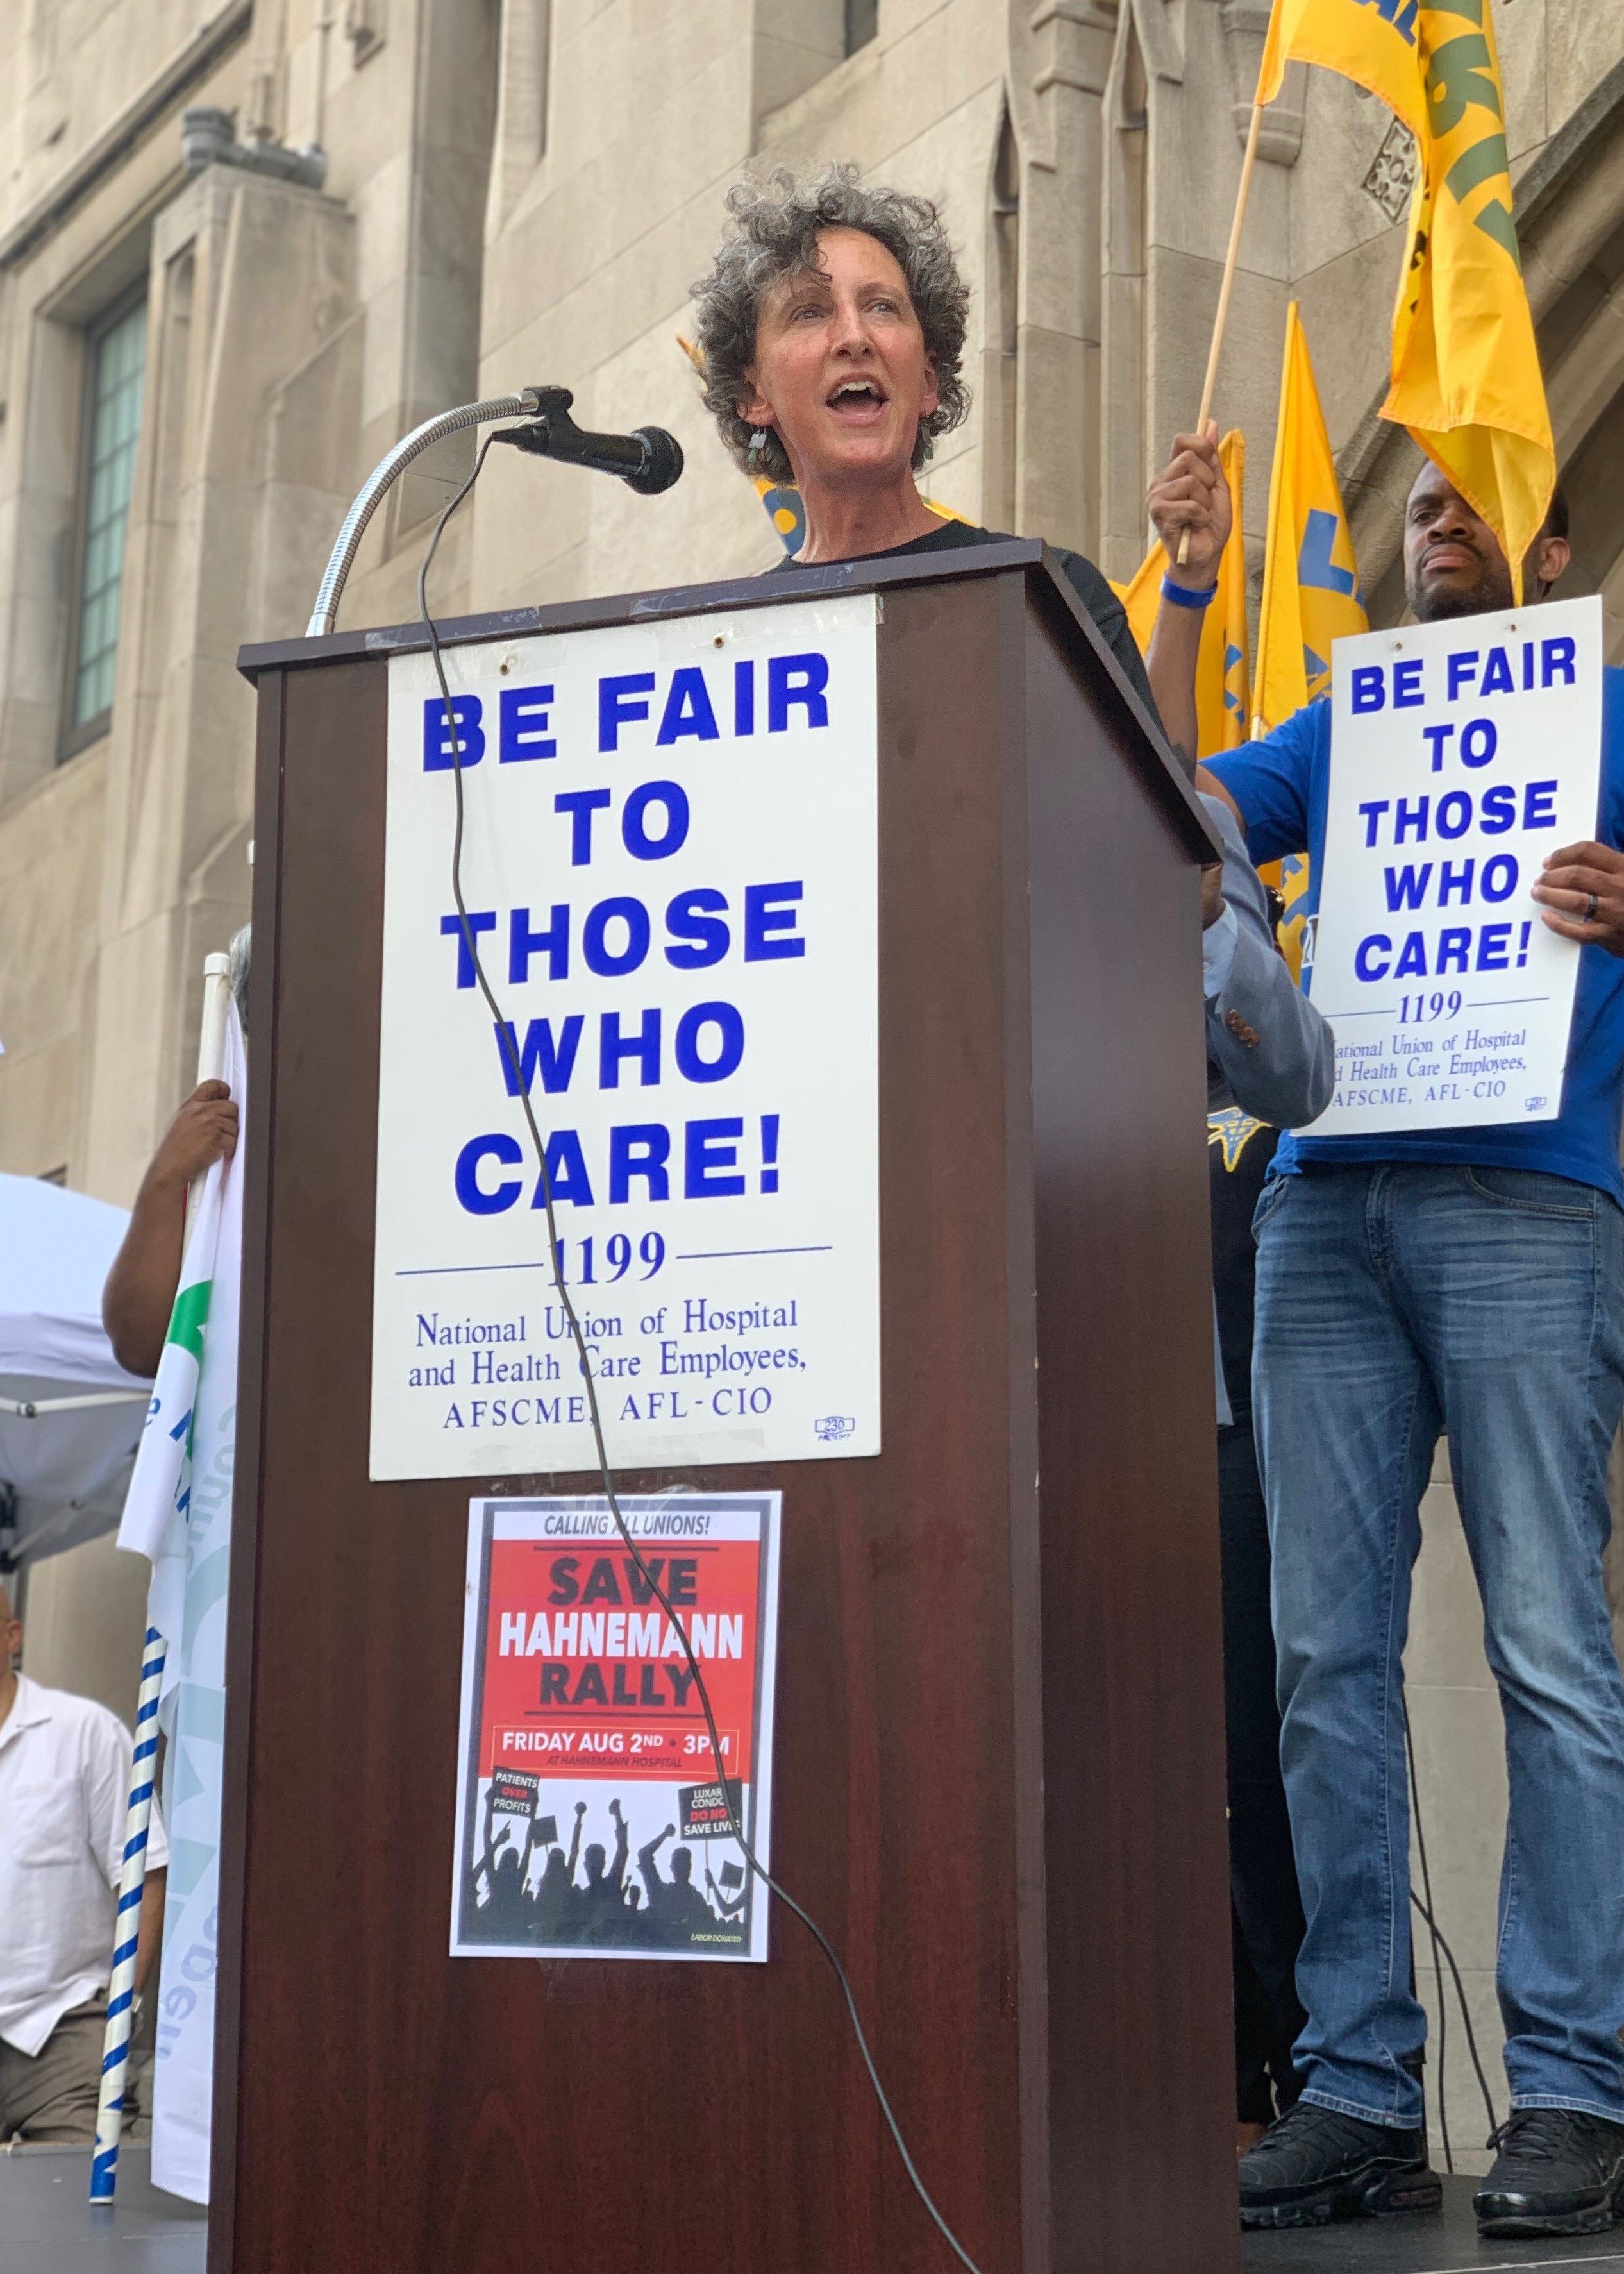 S-T McBride at PA Hospital Rally: 'We Don't Put Corporate Greed over Human Need'